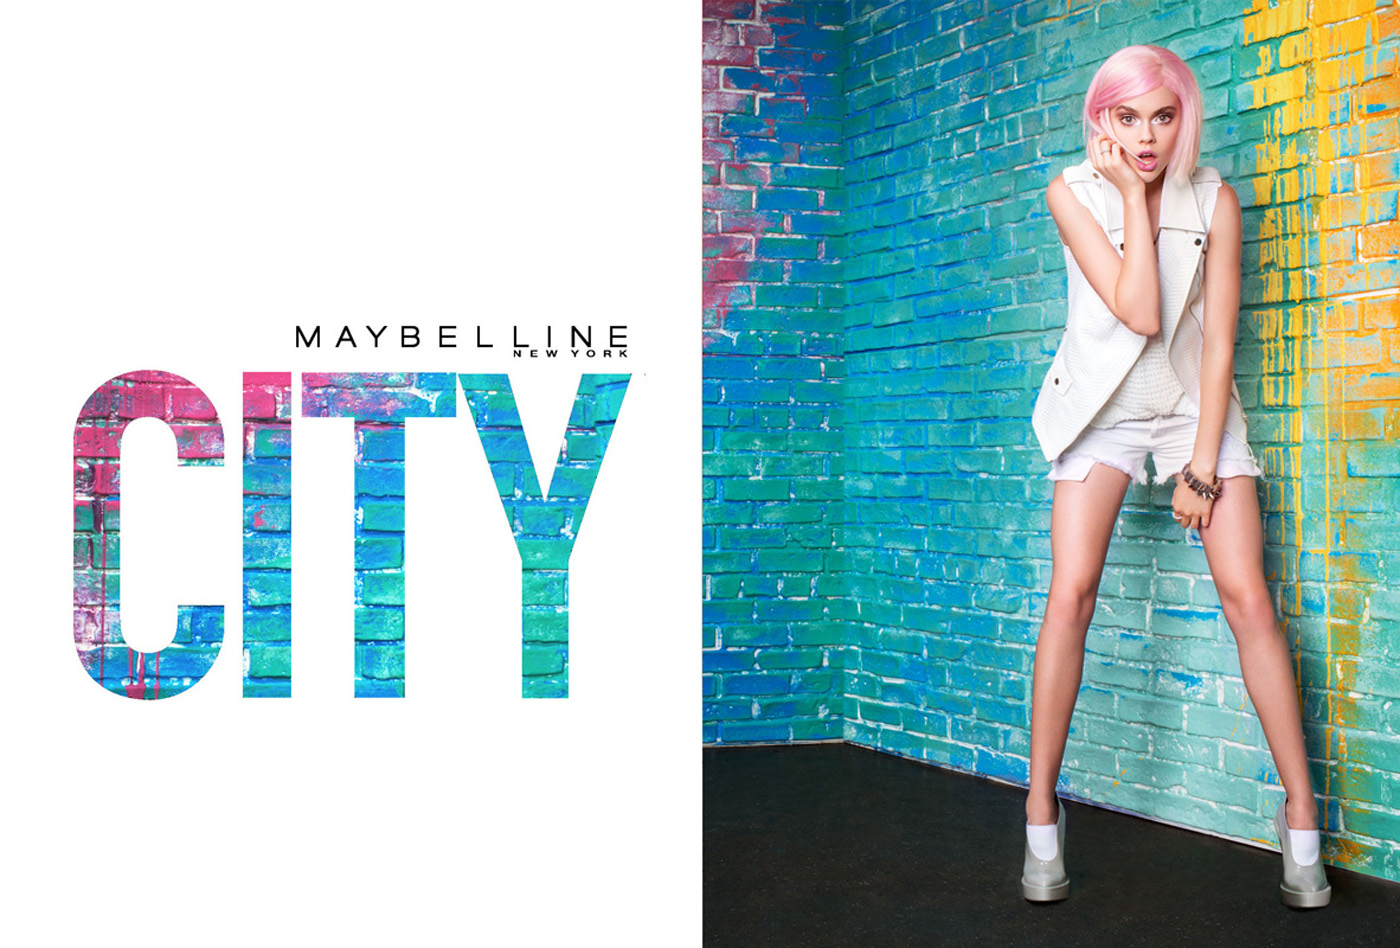 Complice -  Maybelline_CITY_07.jpg